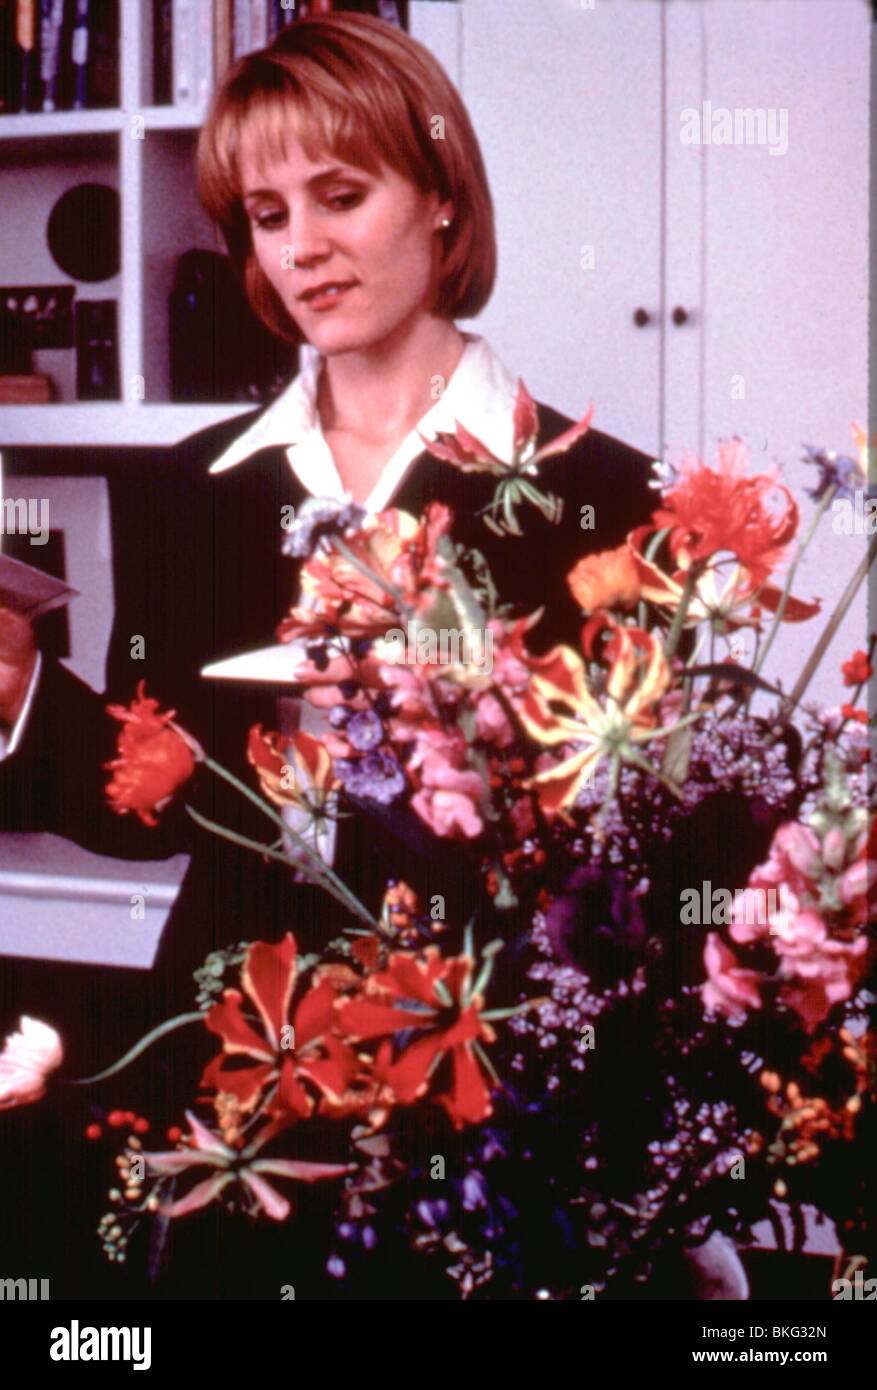 BED OF ROSES (1996) MARY STUART MASTERSON BDRO 004 Stock Photo